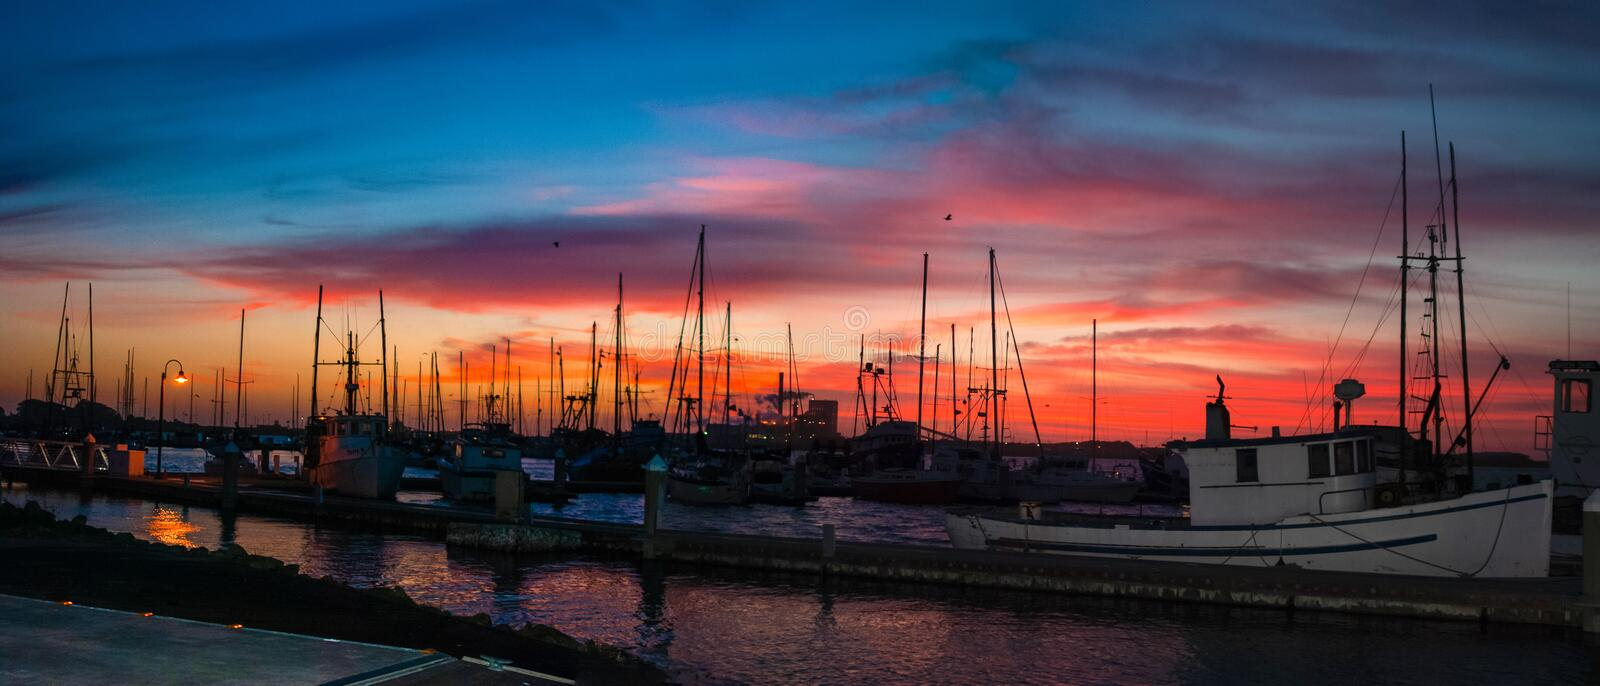 Humboldt Bay Marina Sunset royalty free stock photography